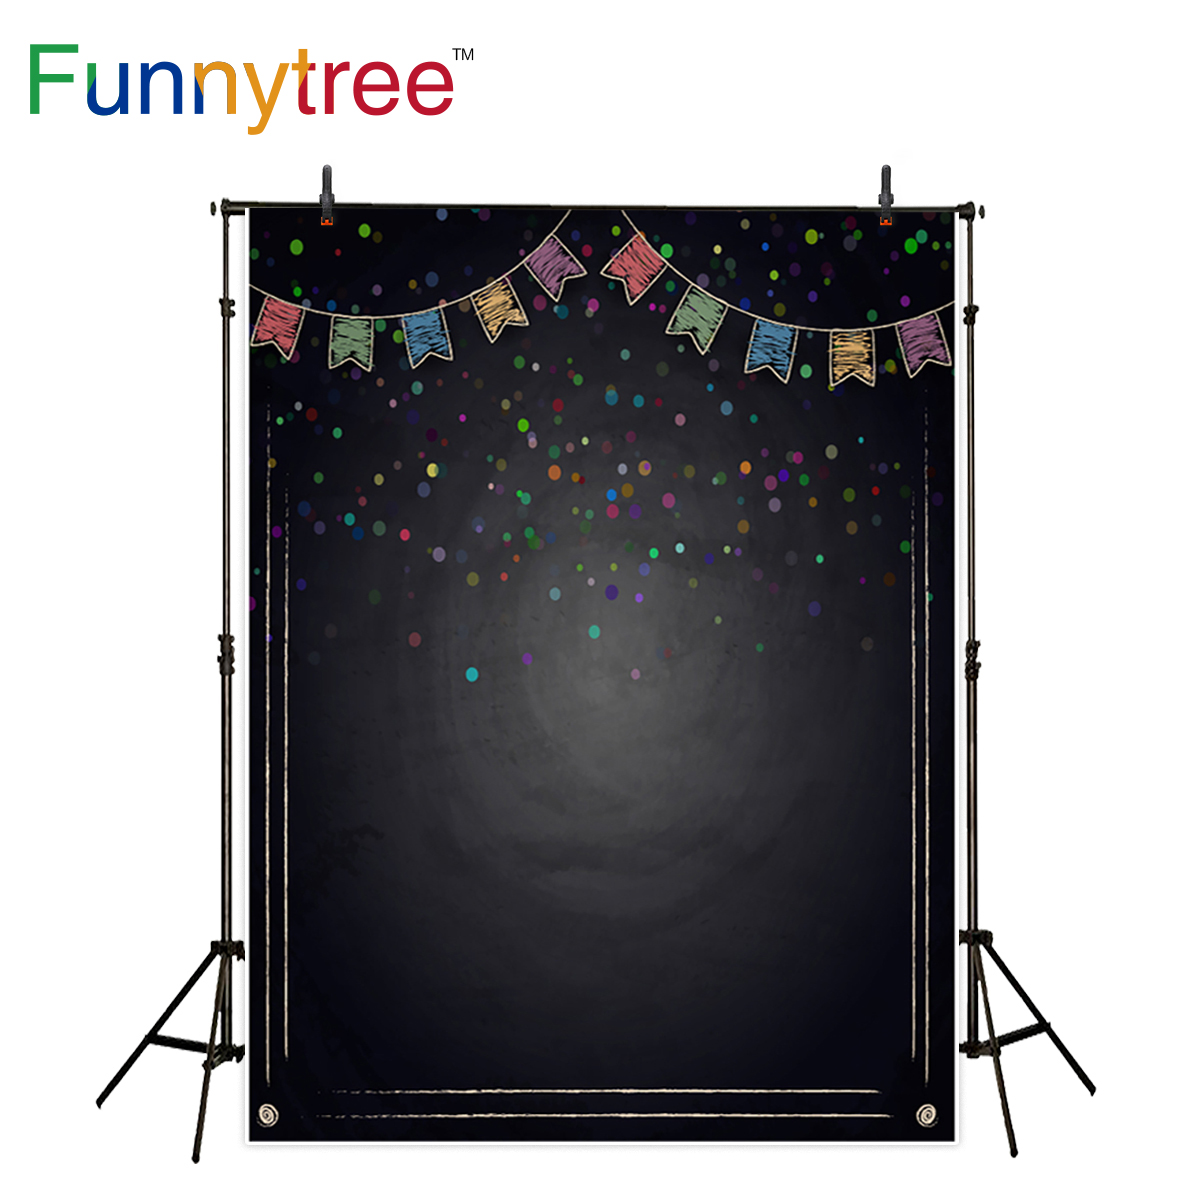 Funnytree photography backdrop colorful backboard flags party decor school background photocall photo studio printed